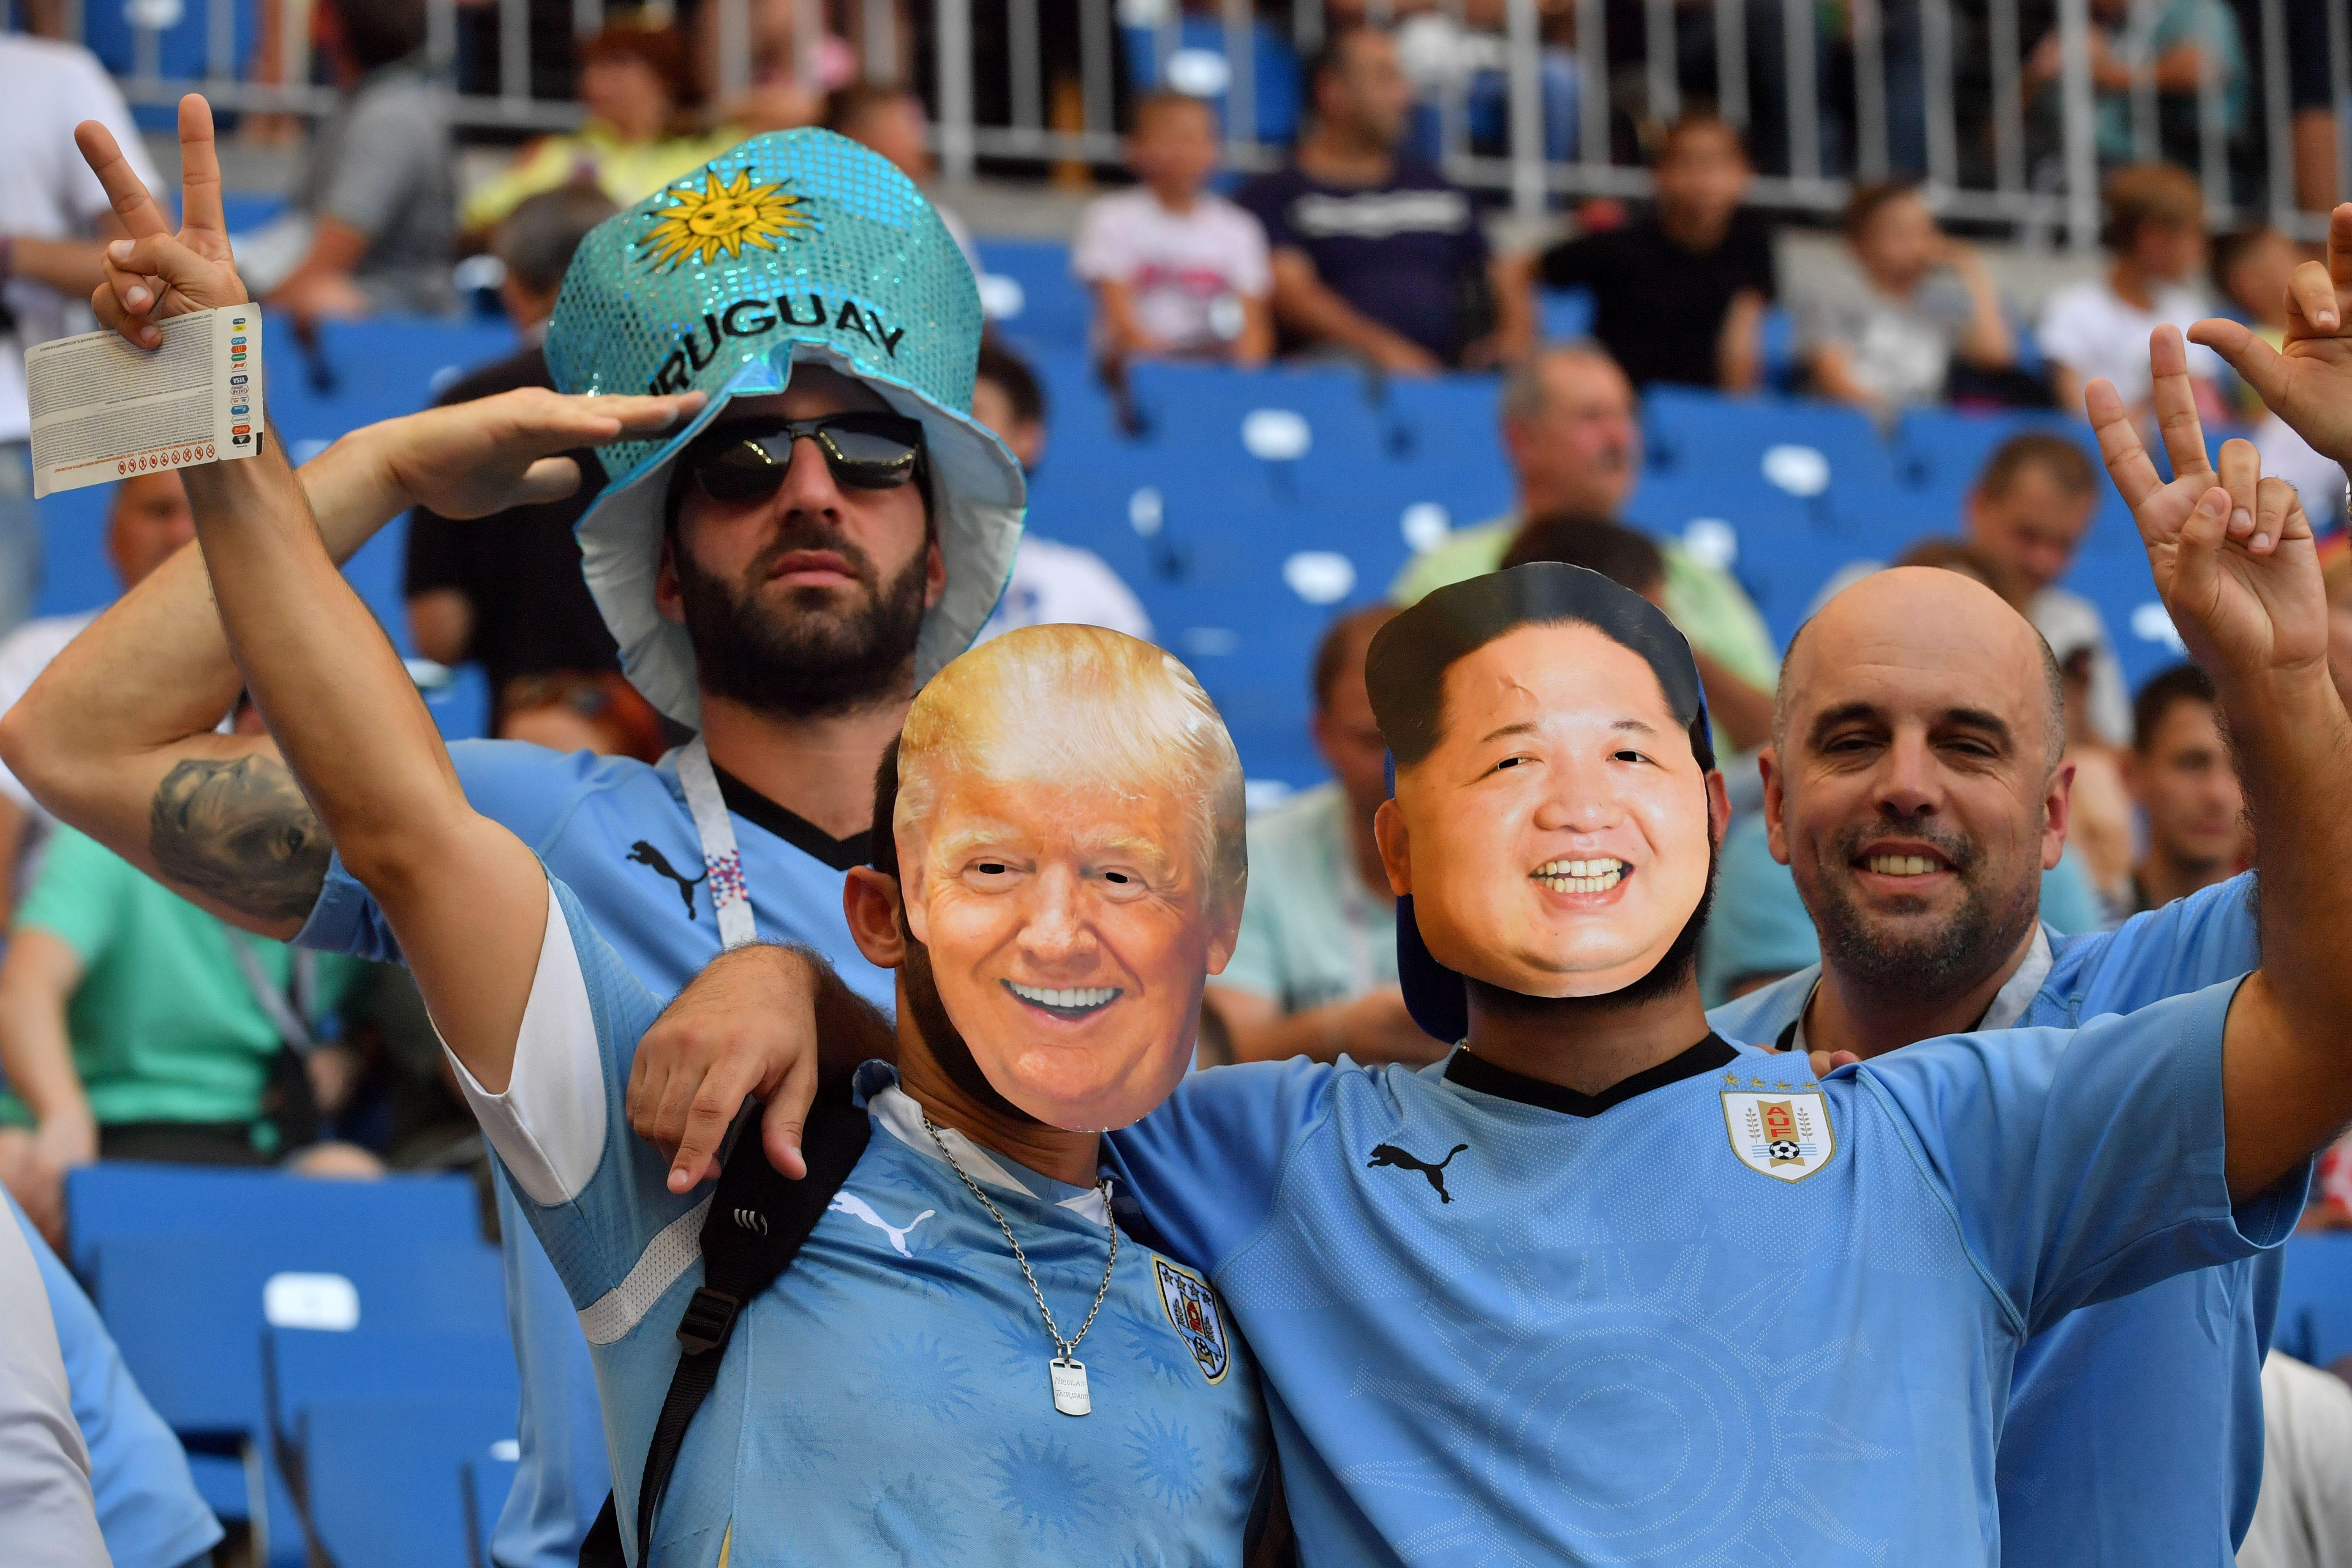 Uruguay fans with paper masks of U.S. President Donald Trump and North Korean leader Kim Jong-un are seen in the crowd ahead of the 2018 World Cup Uruguay–Saudi Arabia match on June 20.